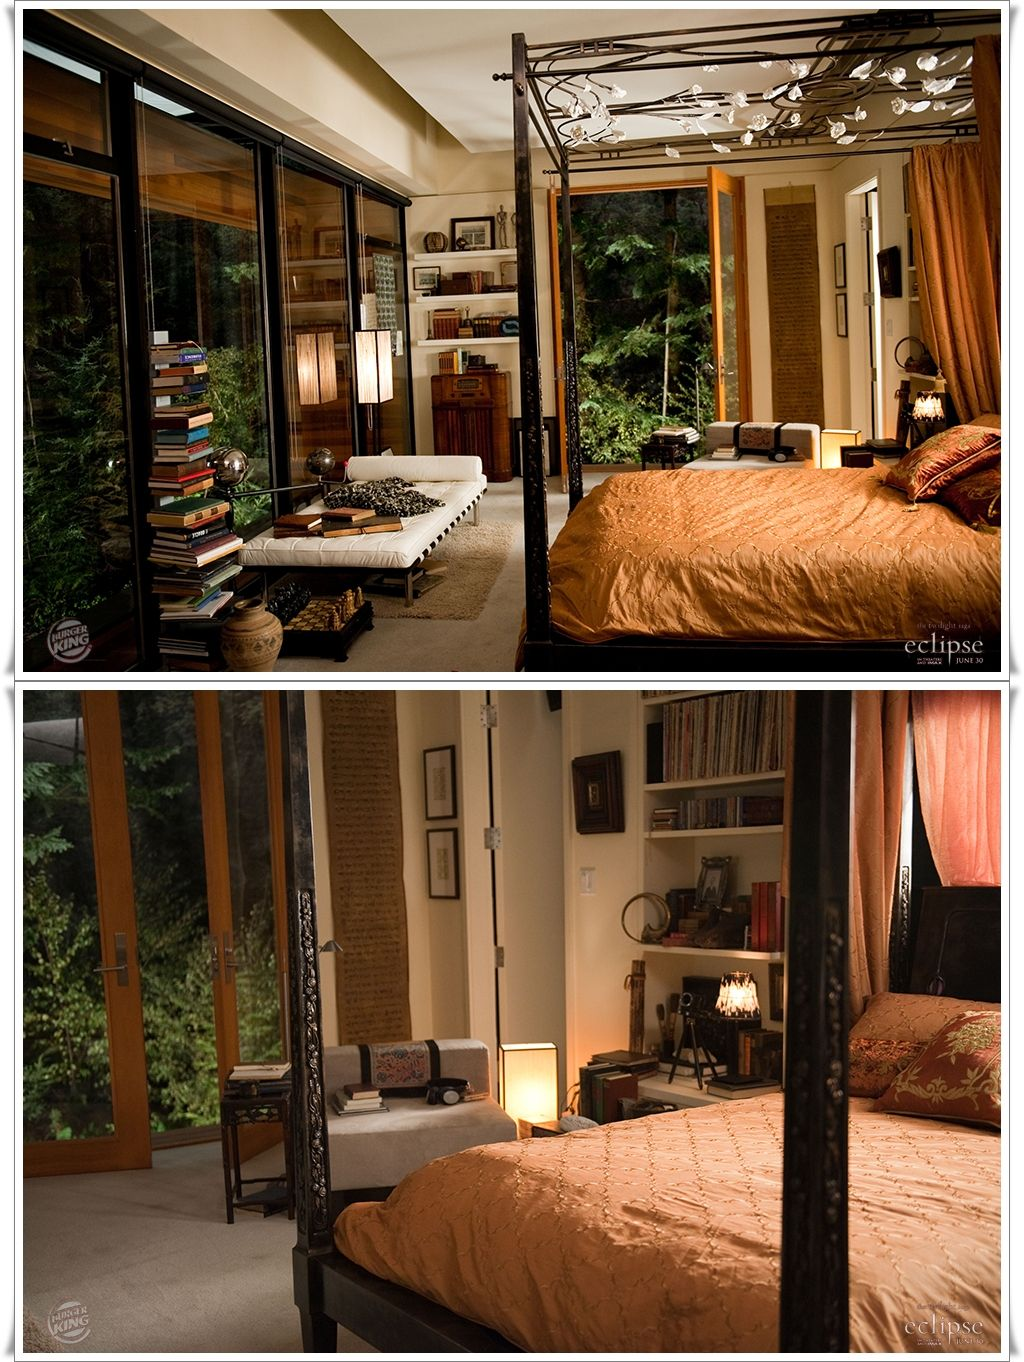 Yes This Is Edward S Bedroom In The Twilight Movies No I Do Not Care Everything About It Makes Me Weak In The Knees The Floo комнаты мечты дом дом мечты